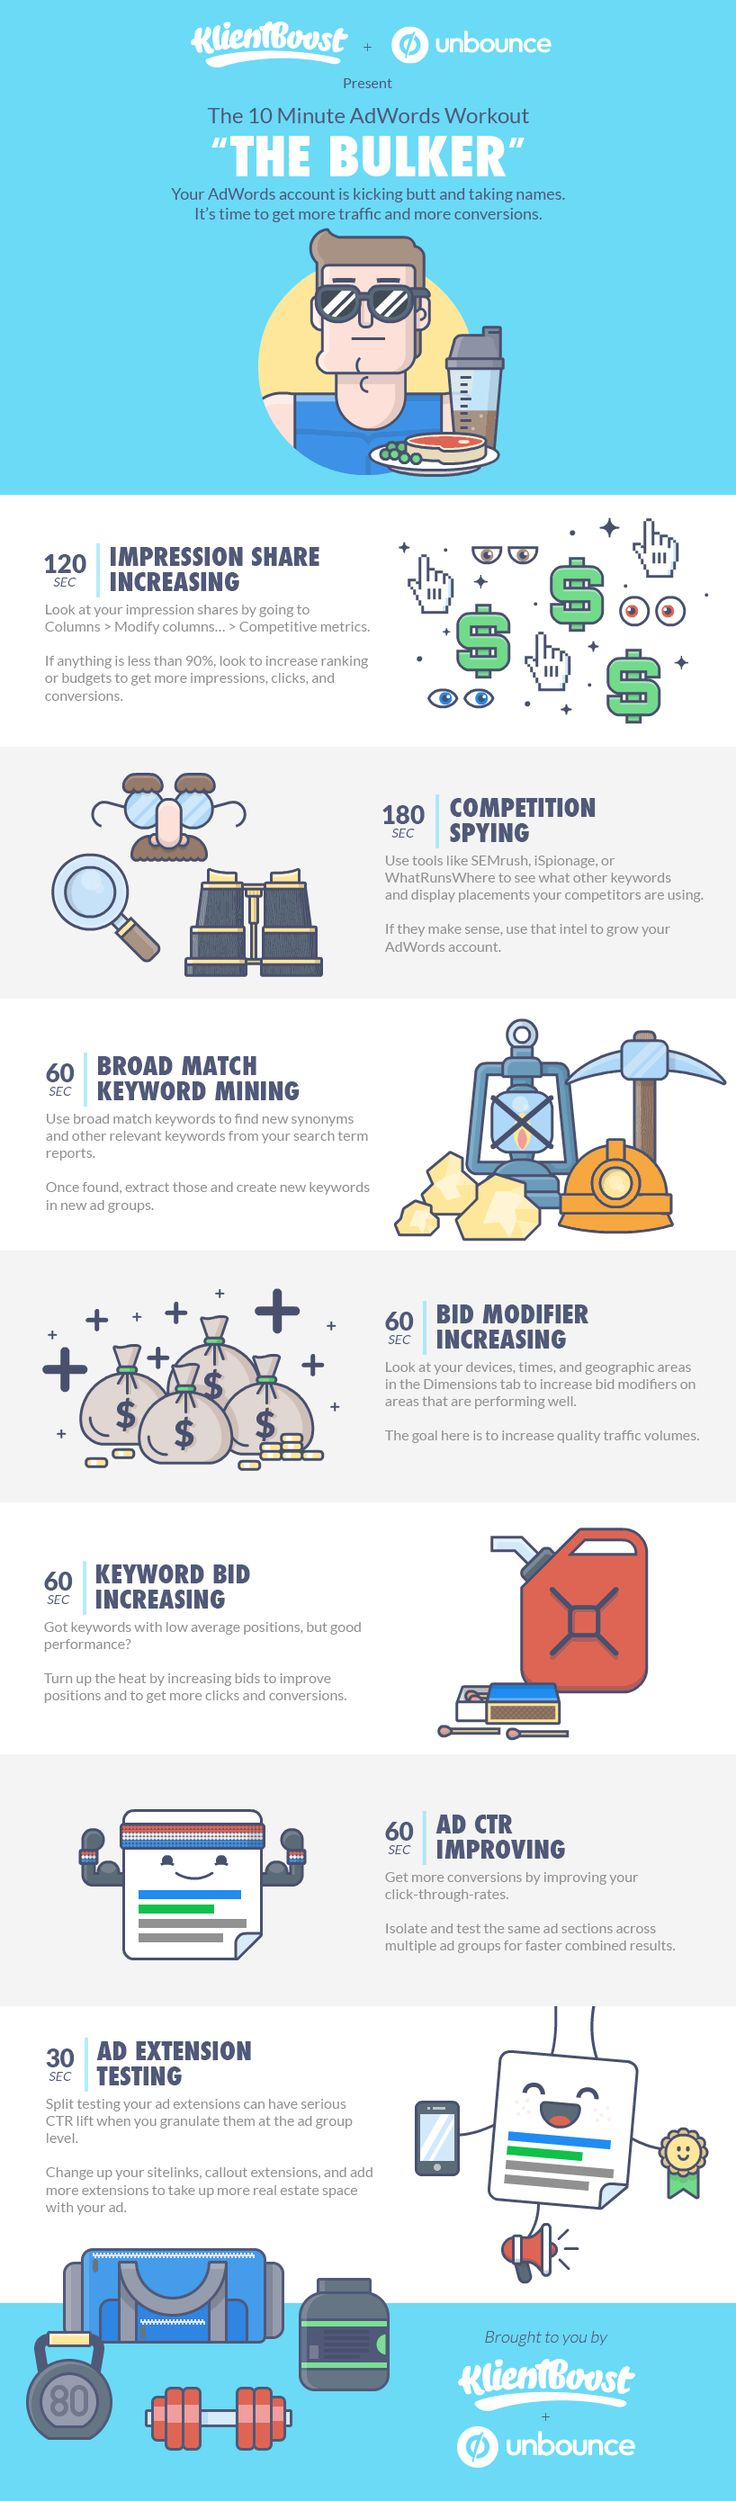 Advertising-Infographics-When-you39re-already-kicking-butt-with-your-PPC-campaign-make-sure-to-spy-on Advertising Infographics : When you're already kicking butt with your PPC campaign, make sure to spy on...